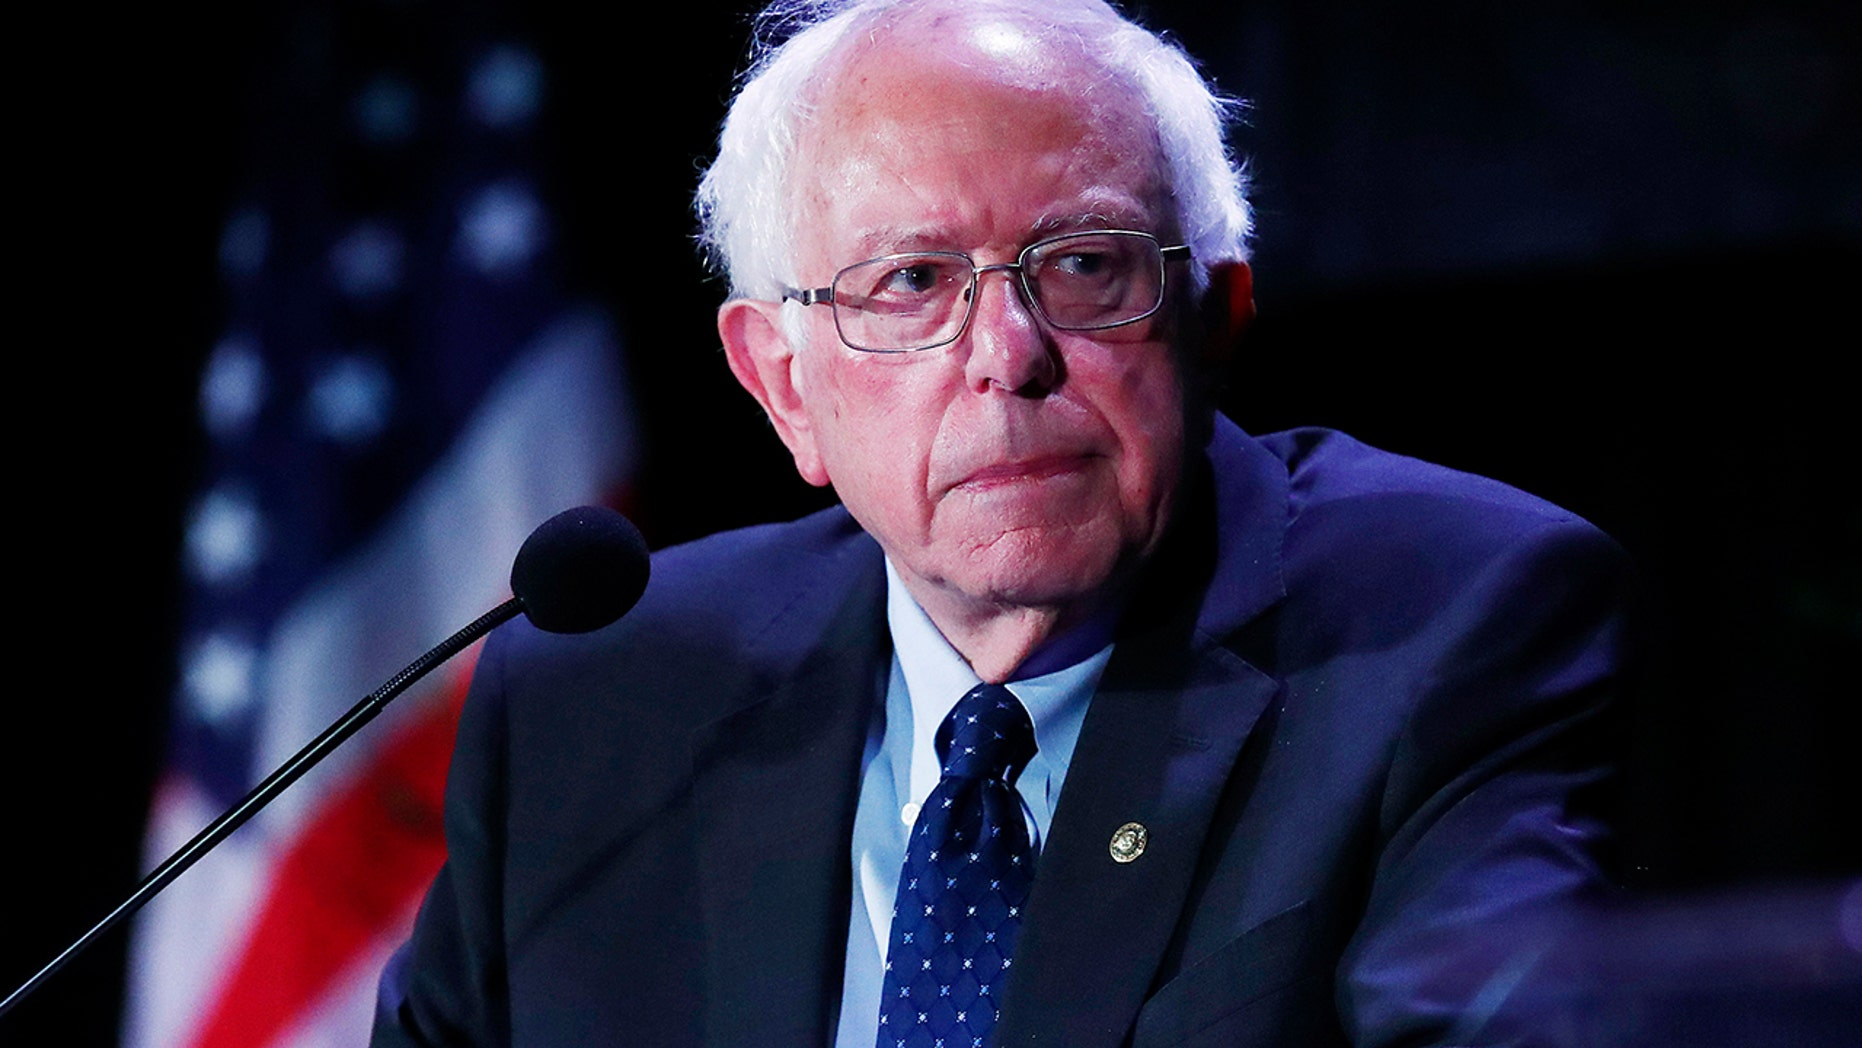 Democratic presidential candidate Sen. Bernie Sanders, I-Vt., pauses while speaking during a forum on Friday, June 21, 2019, in Miami. (AP Photo/Brynn Anderson)